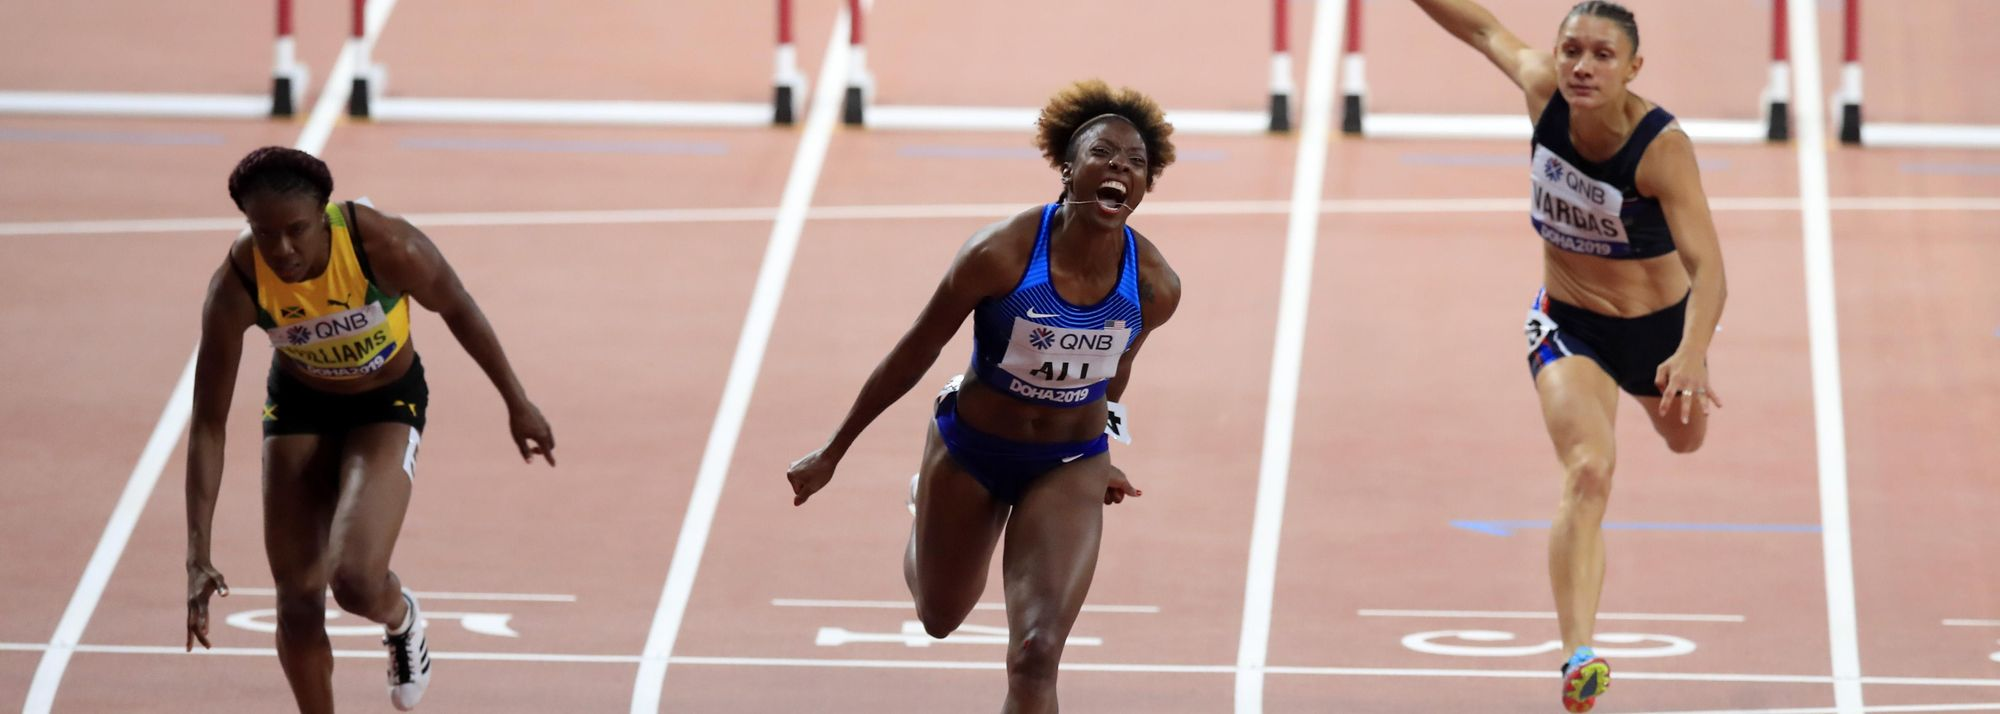 Three victories on the concluding day of the World Athletics Championships Doha 2019 – from 100m hurdler Nia Ali and the men's and women's 4x400m teams - bolstered the United States' position at the top of the medal table, taking their count to 14 golds and 29 medals in total.